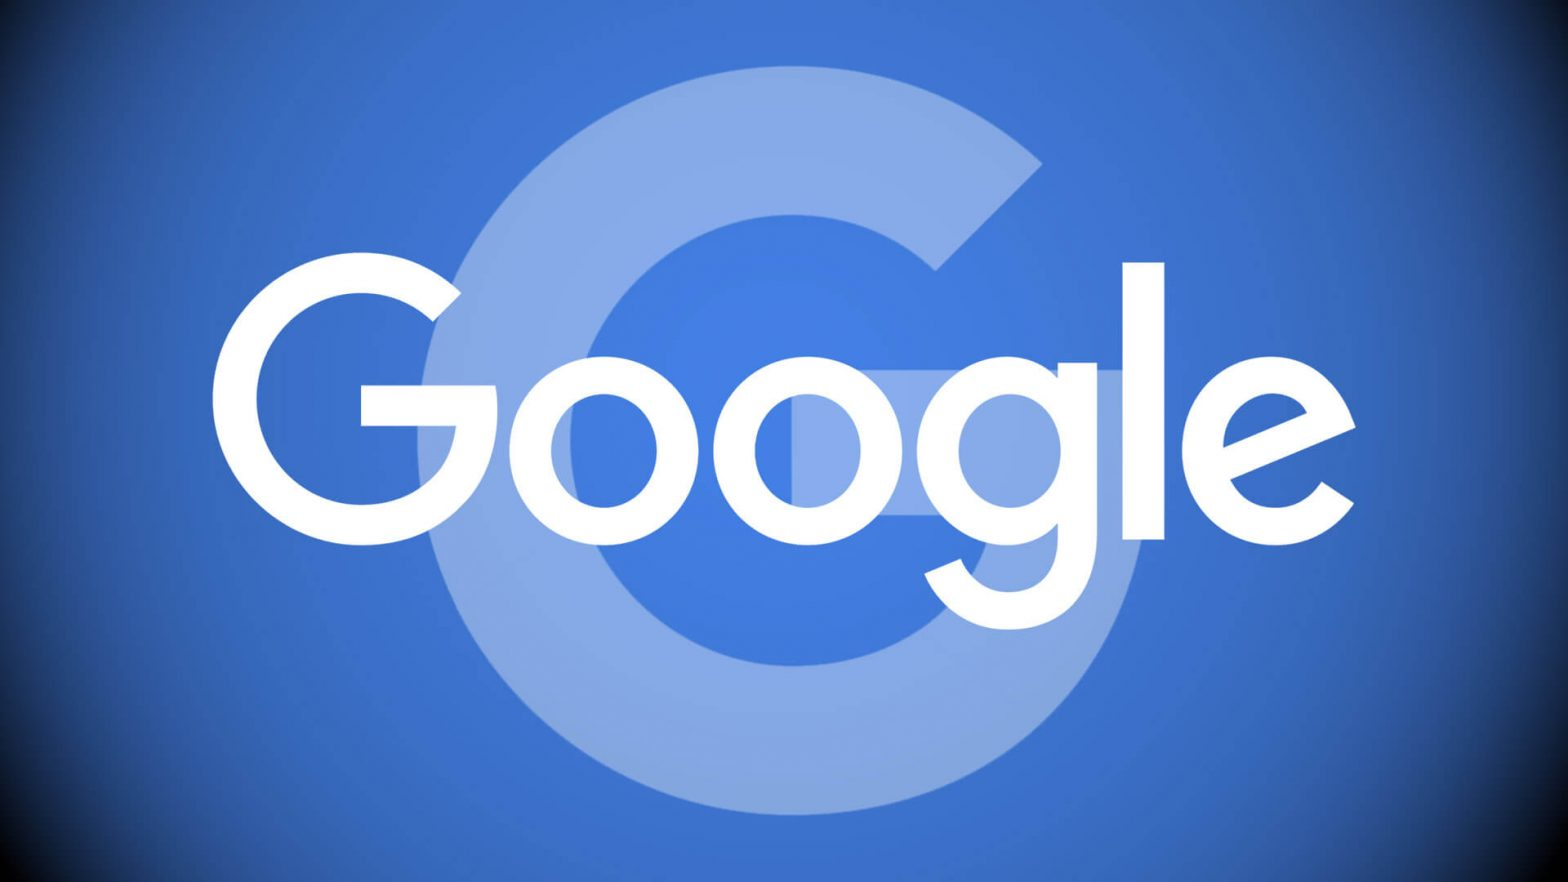 Google Rolls Out a Feature to iOS App Allowing Users to Delete Last 15 Minutes of Browsing History